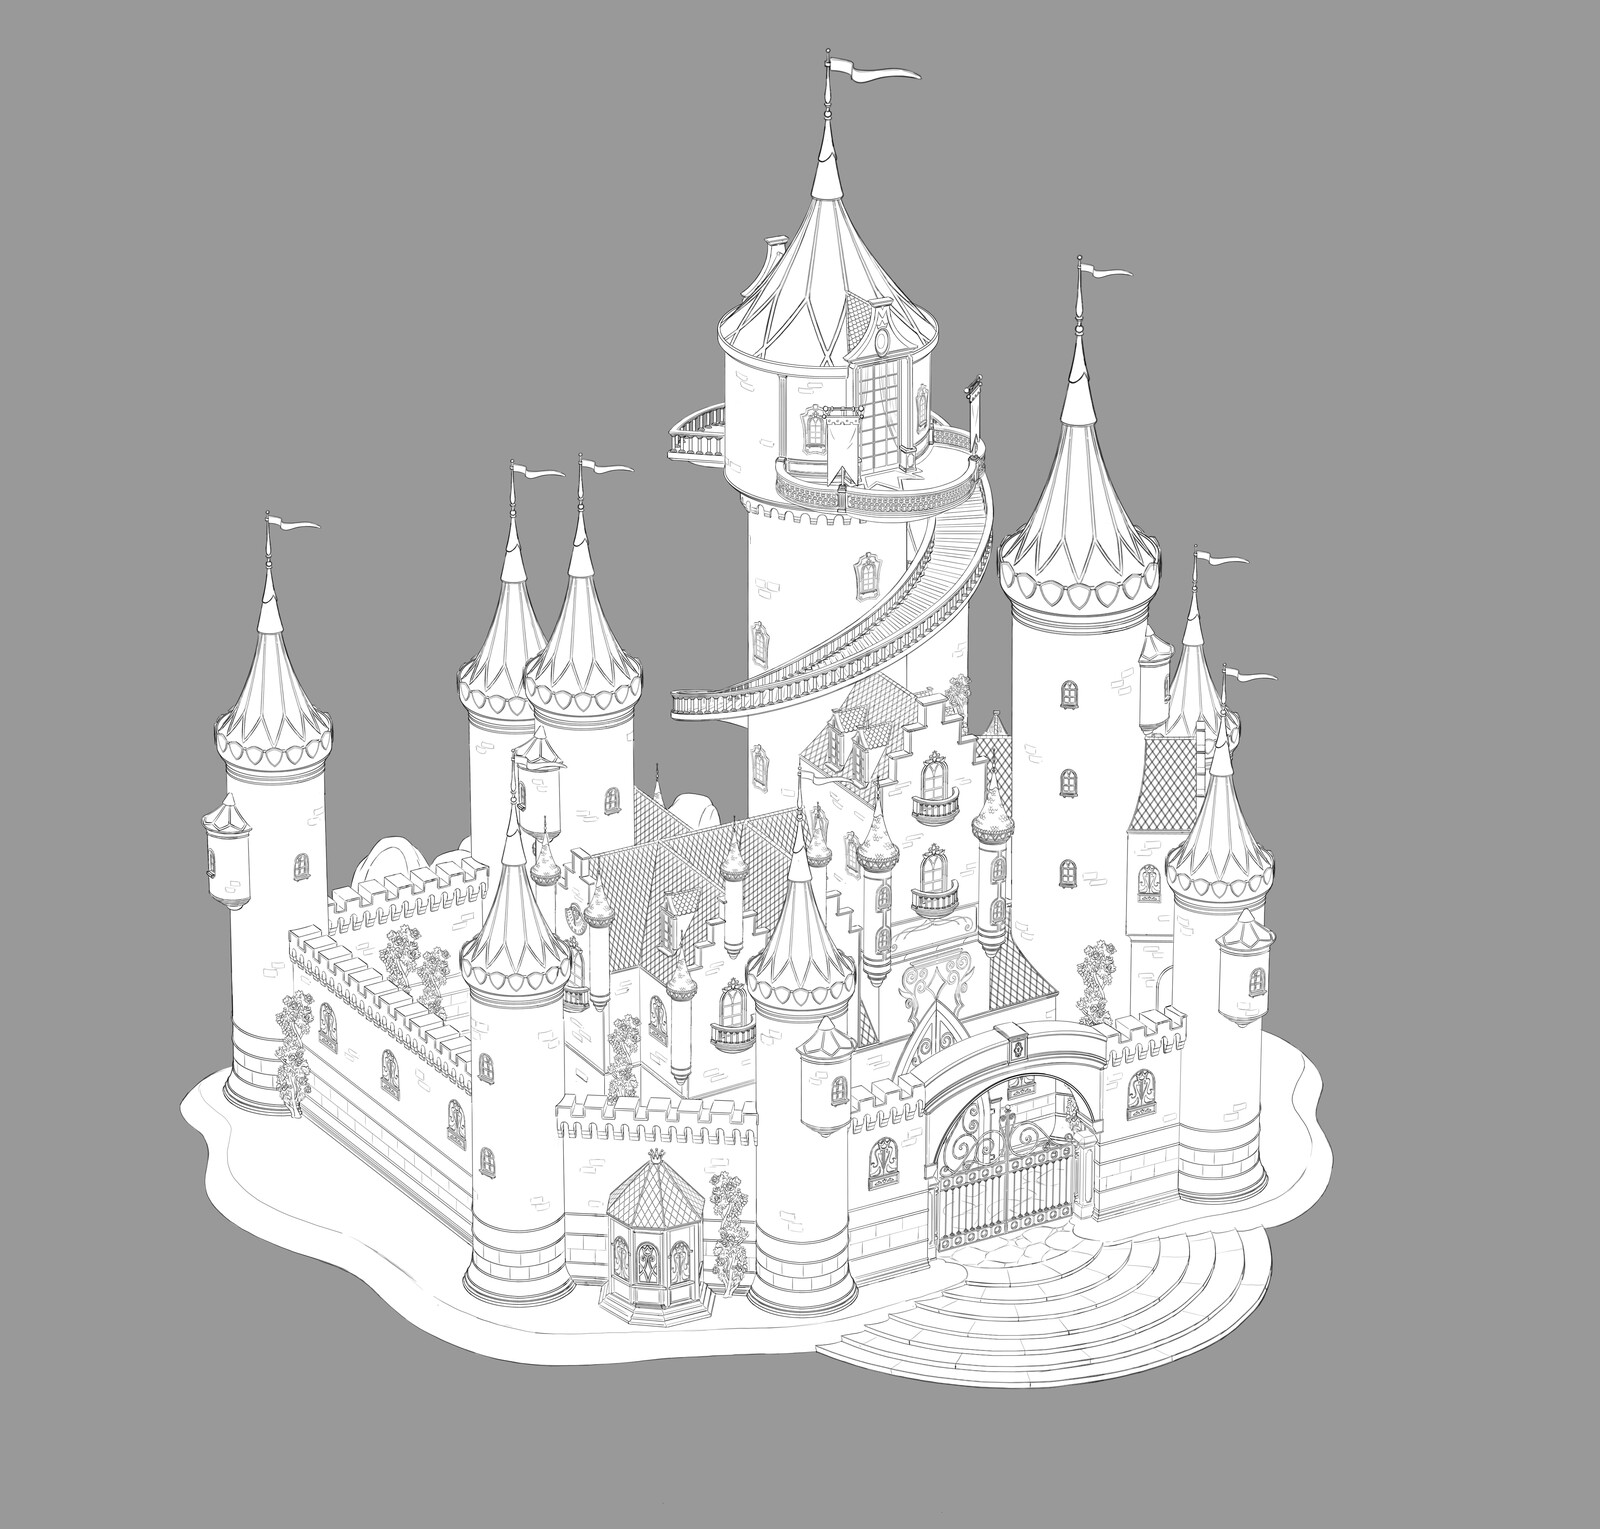 Final design for the Fairytale Castle, based on the existing toy-line.